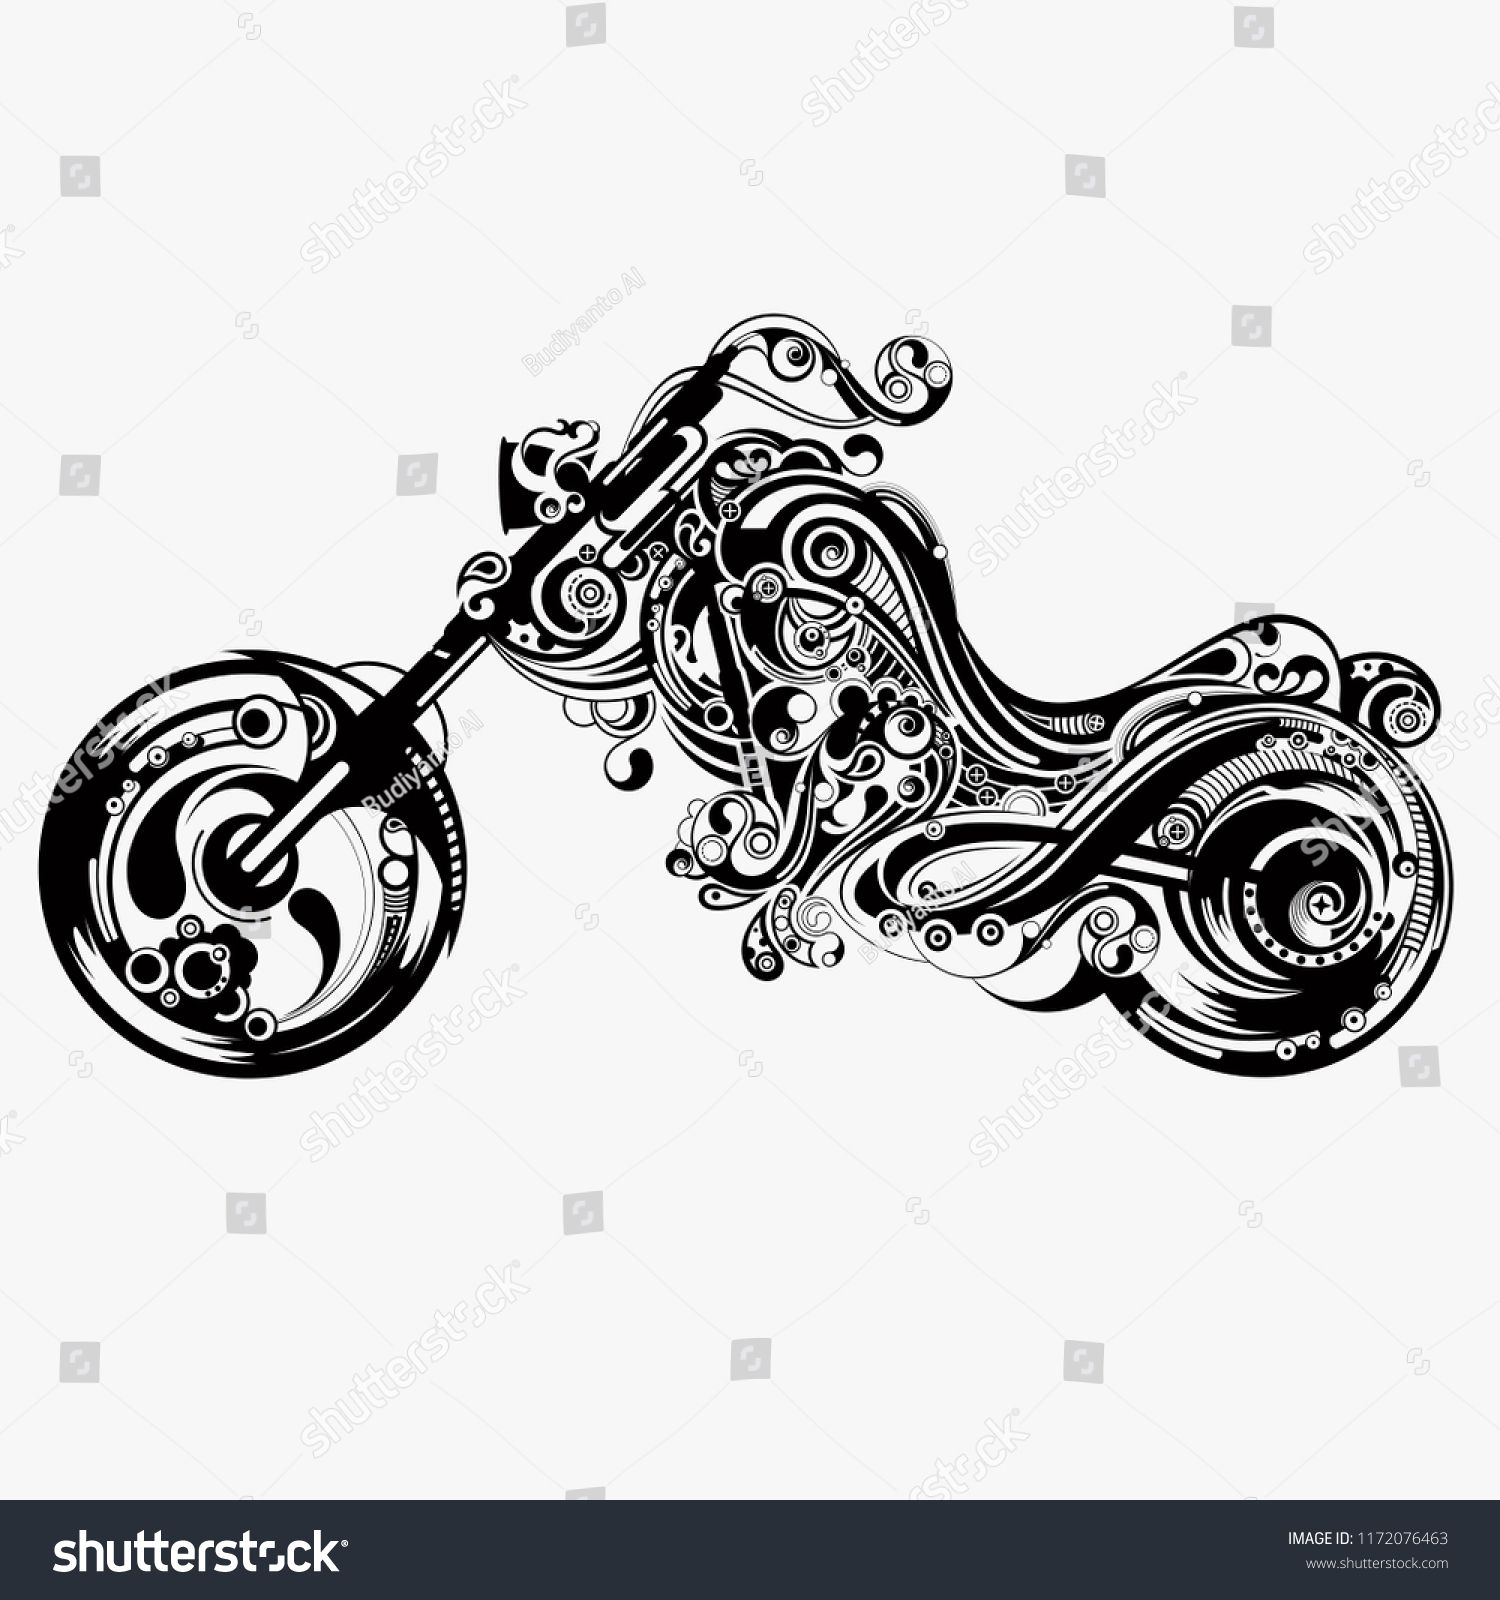 Motorcycle Vector Illustration Design For Tattoo Designs And